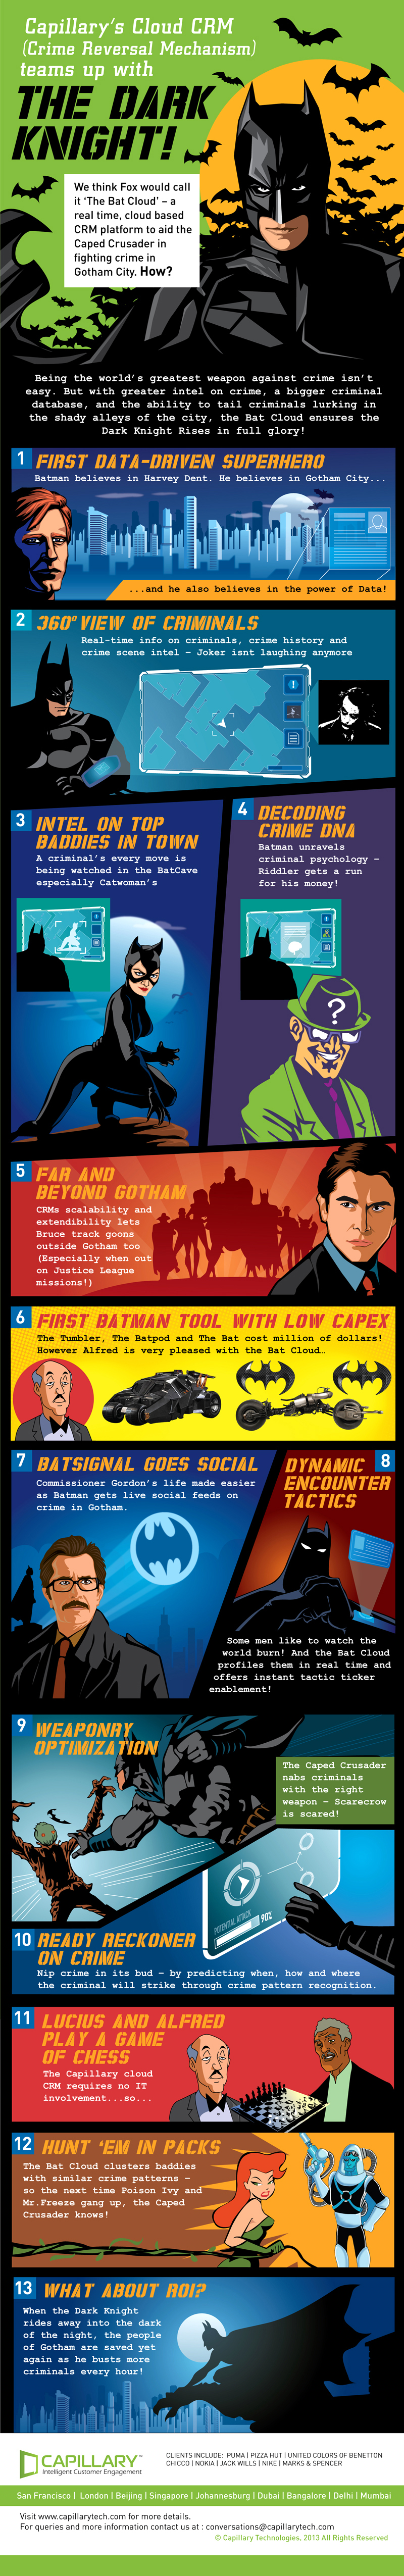 Infographic: The Dark Knight